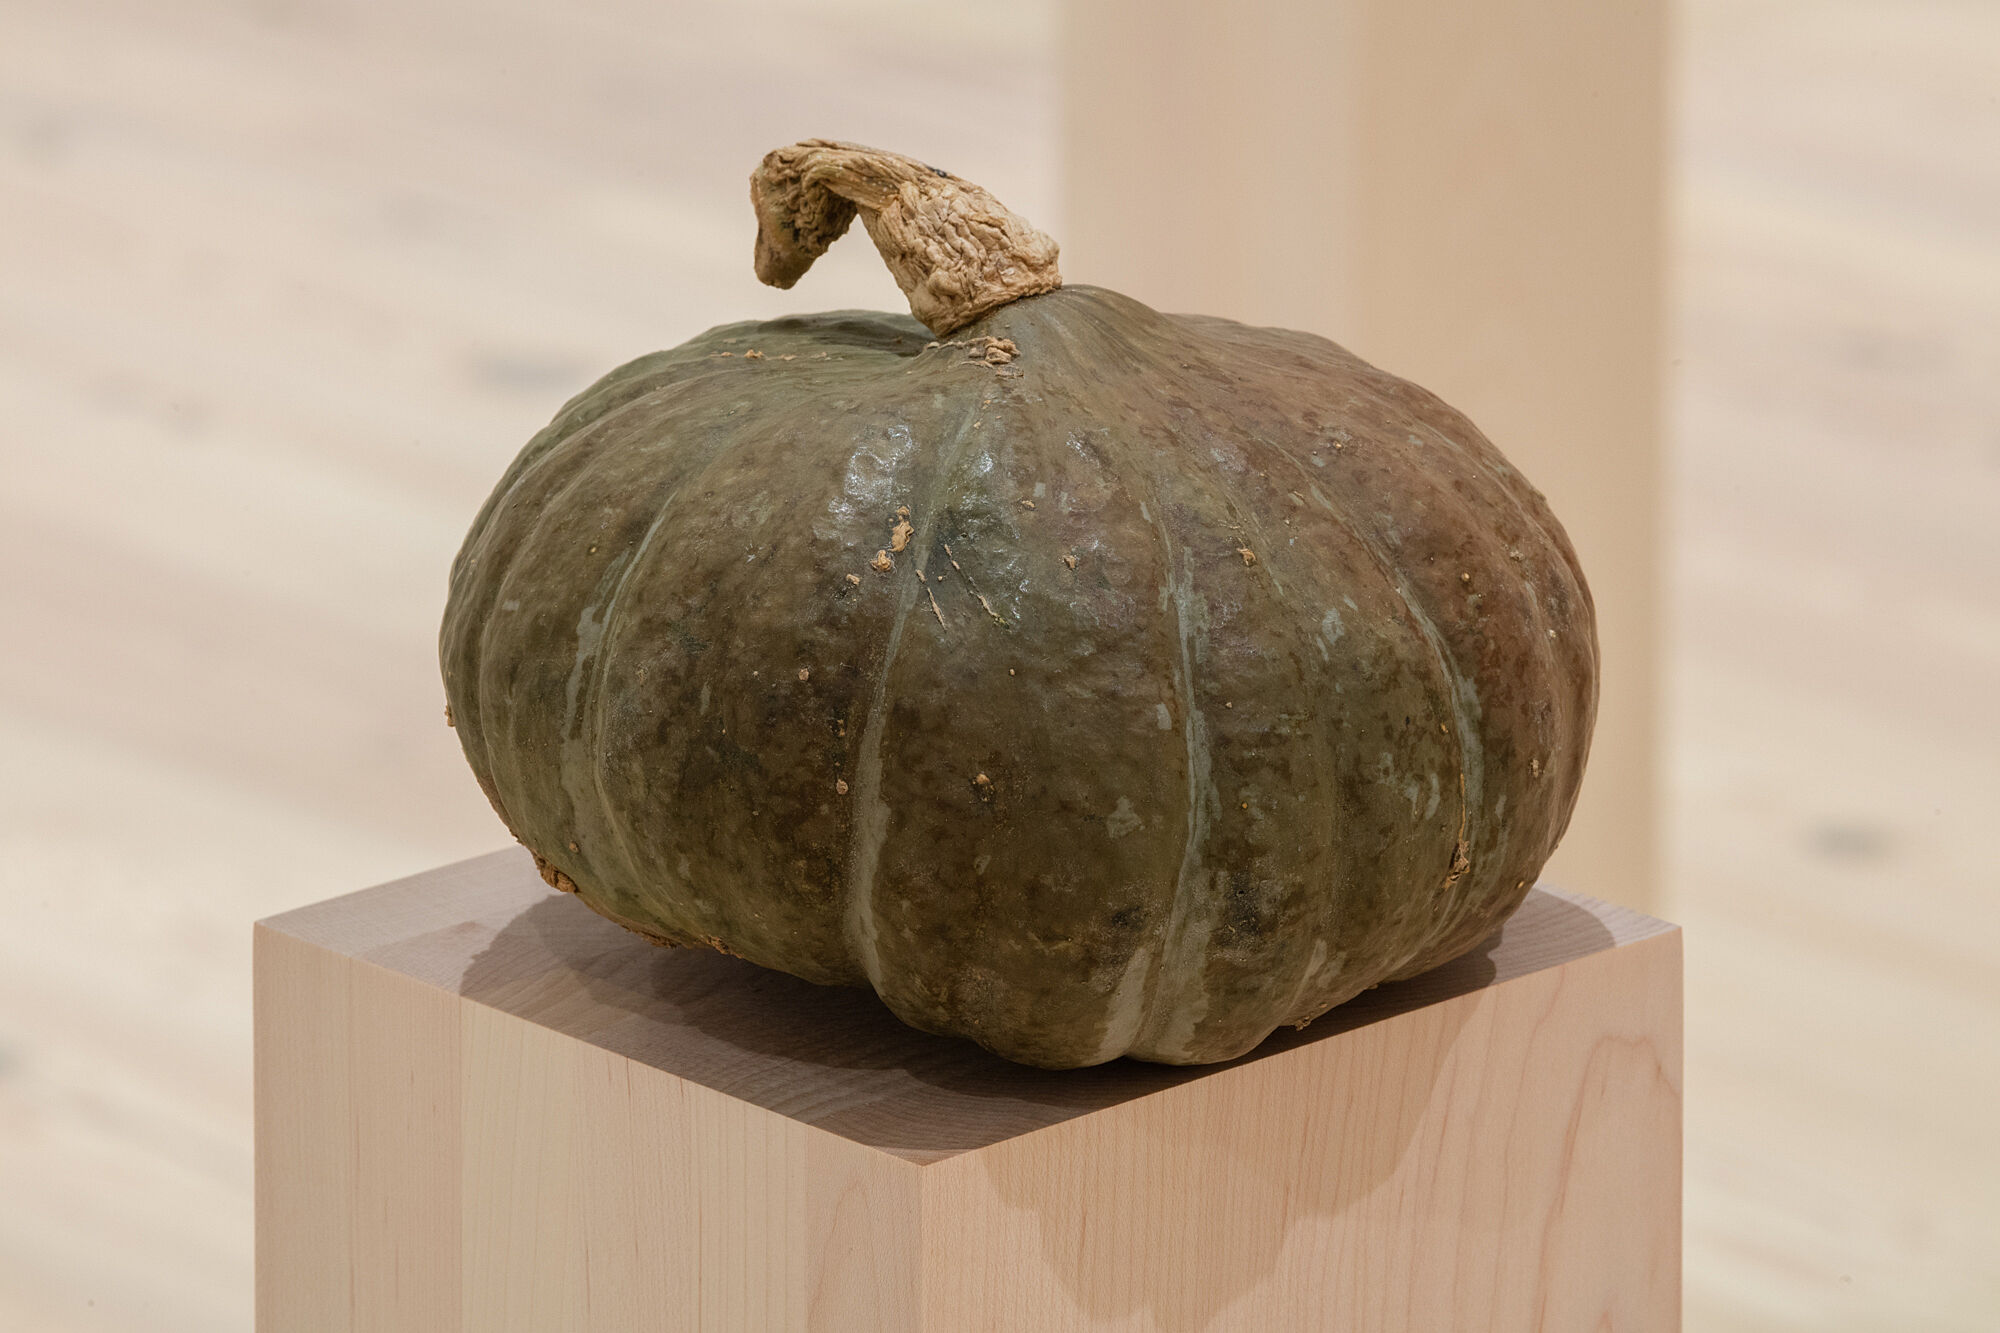 A photo of a kobocha squash on a plinth.